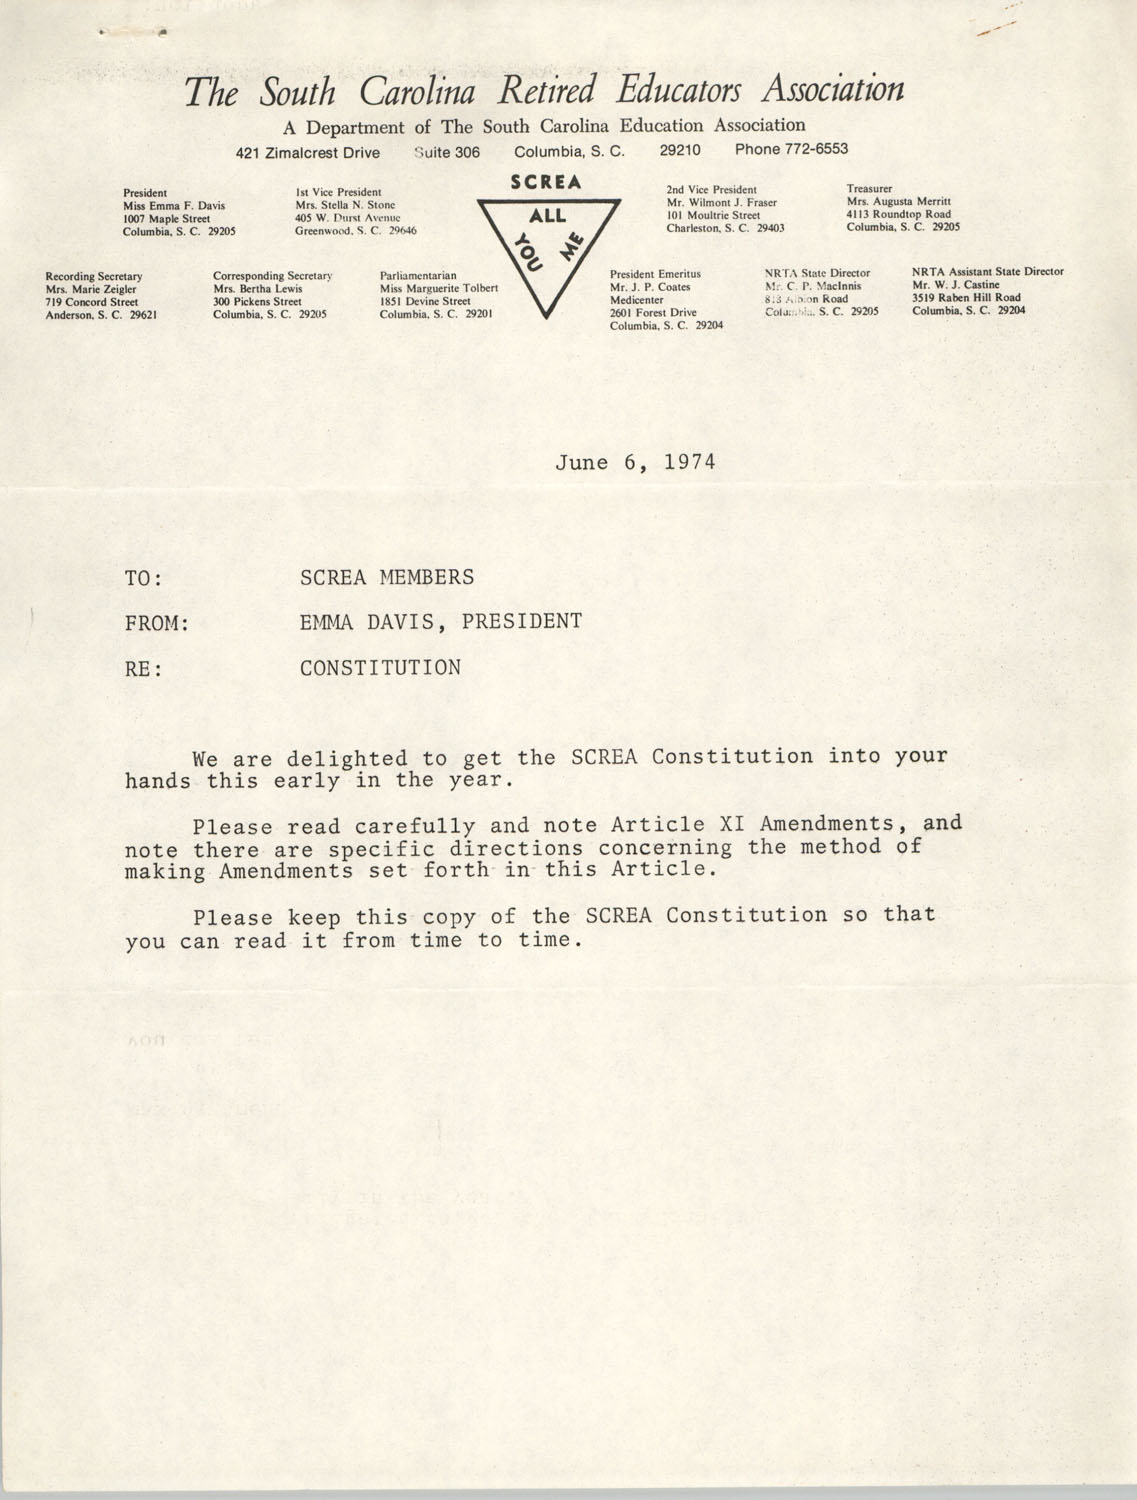 South Carolina Retired Educators Association Memorandum, June 6, 1974